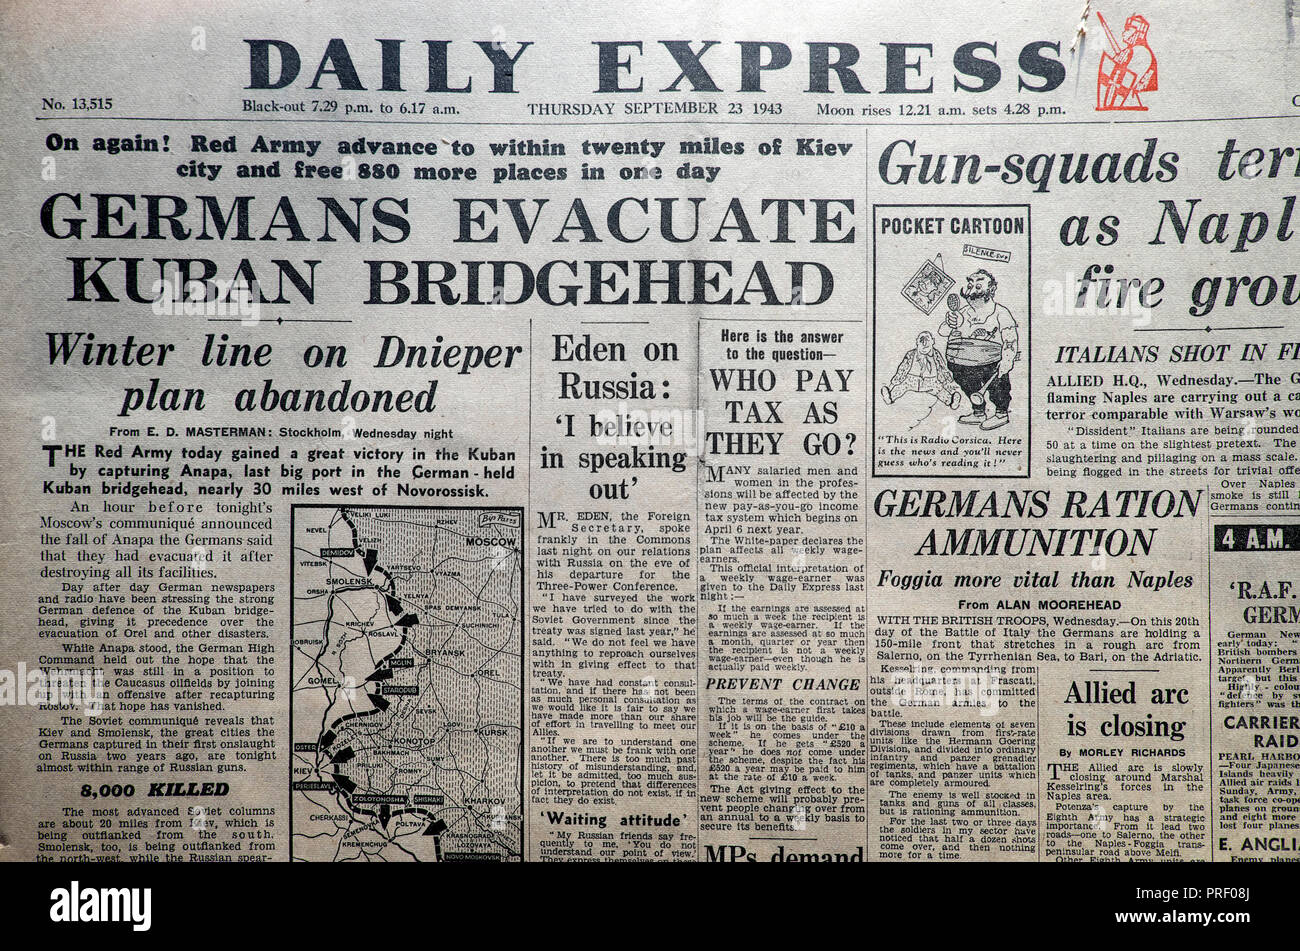 Second World War headlines in Daily Express newspaper 'Germans Evacuate Kuban Bridgehead'  London England UK on September 23 1943  historical archive - Stock Image